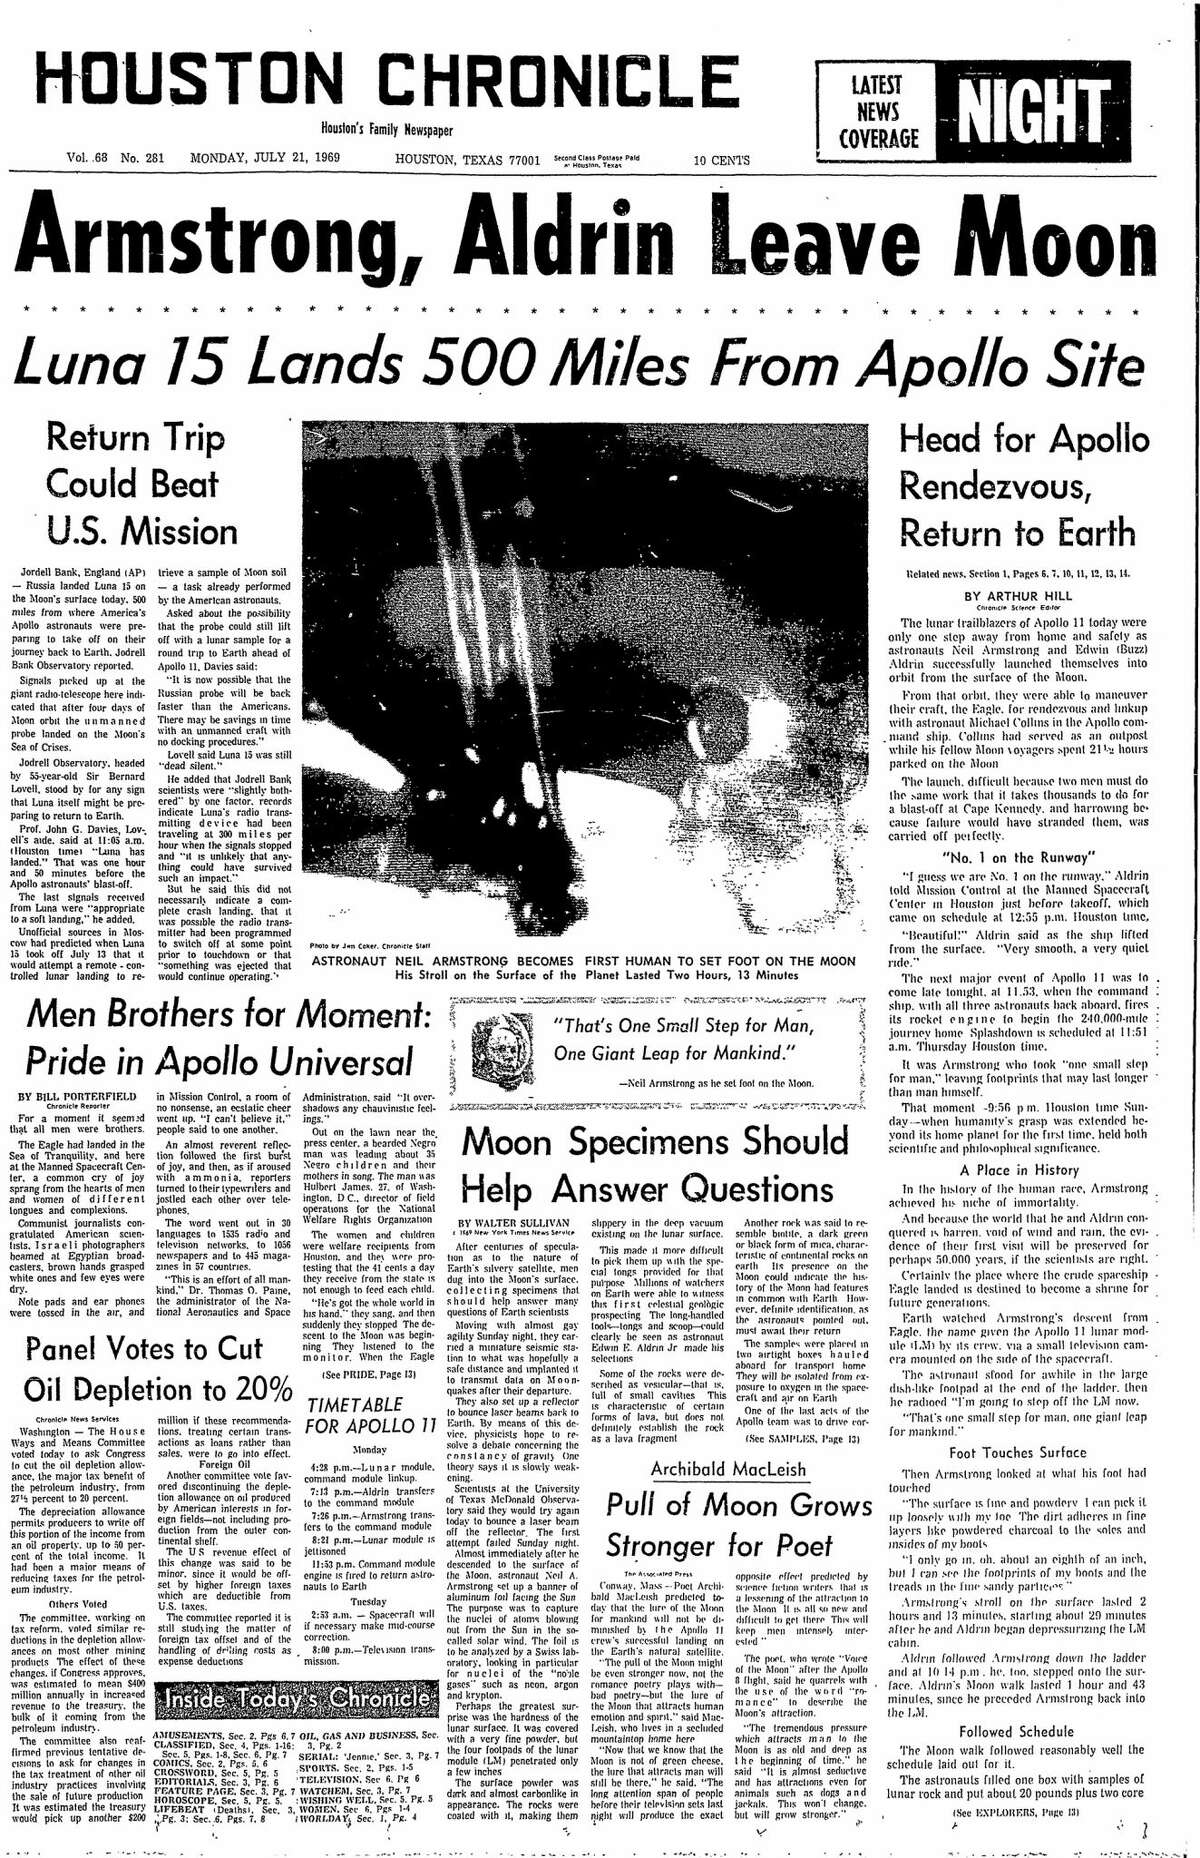 Houston Chronicle front page from July 21, 1969.